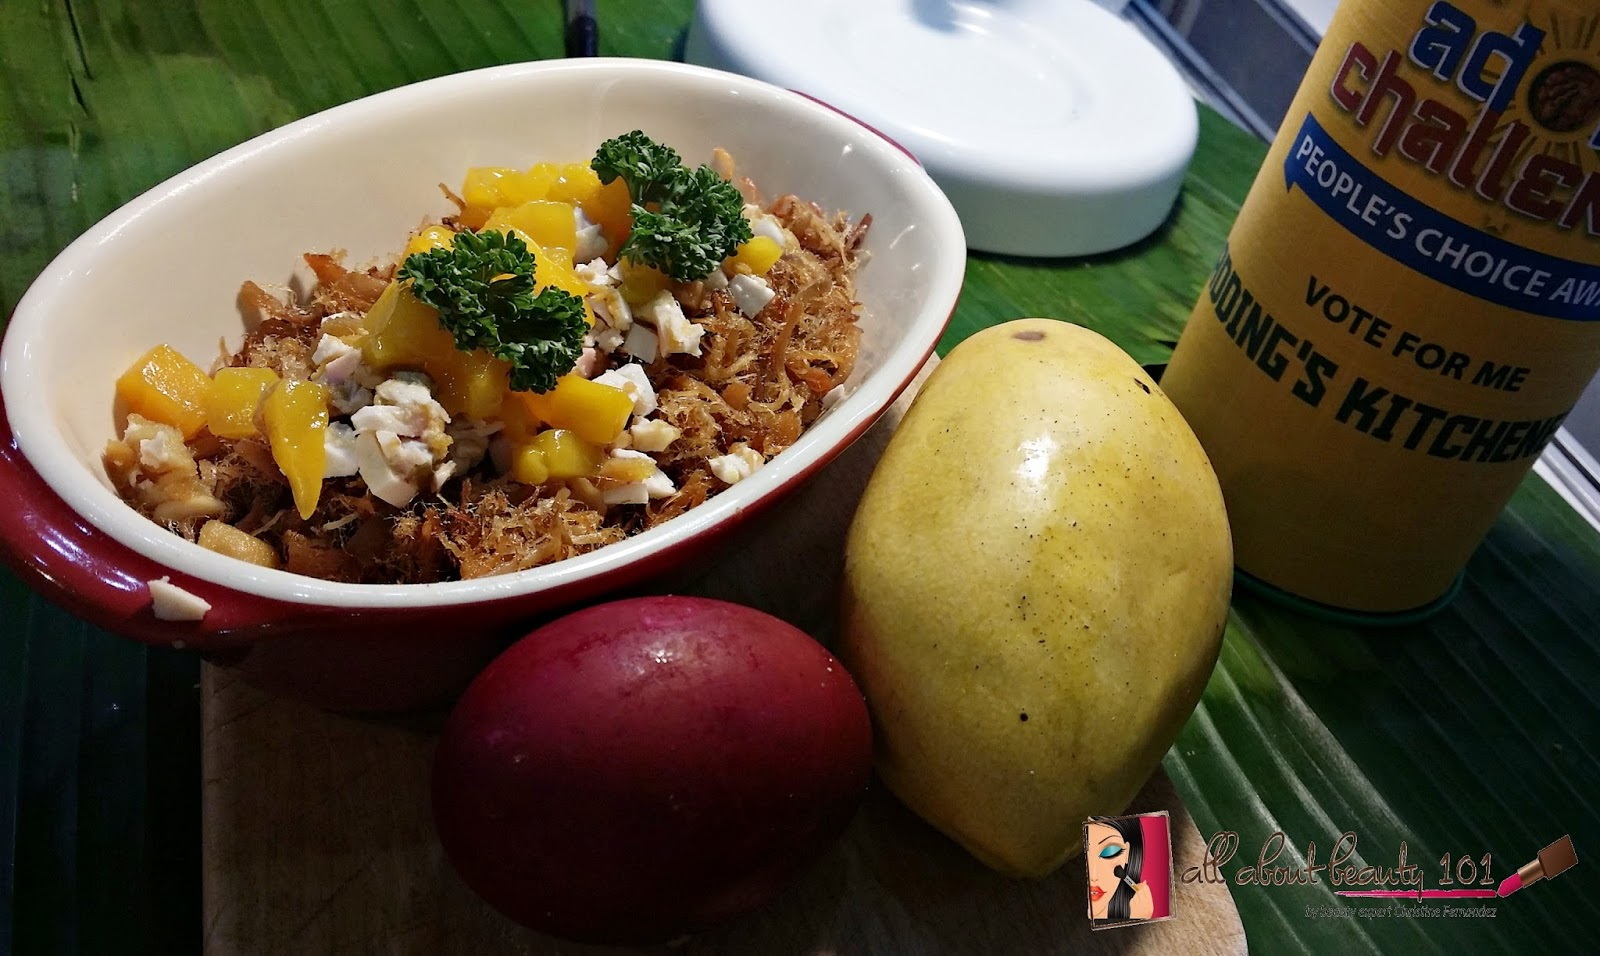 Food Event Adobo Movement Challenge All About Beauty 101